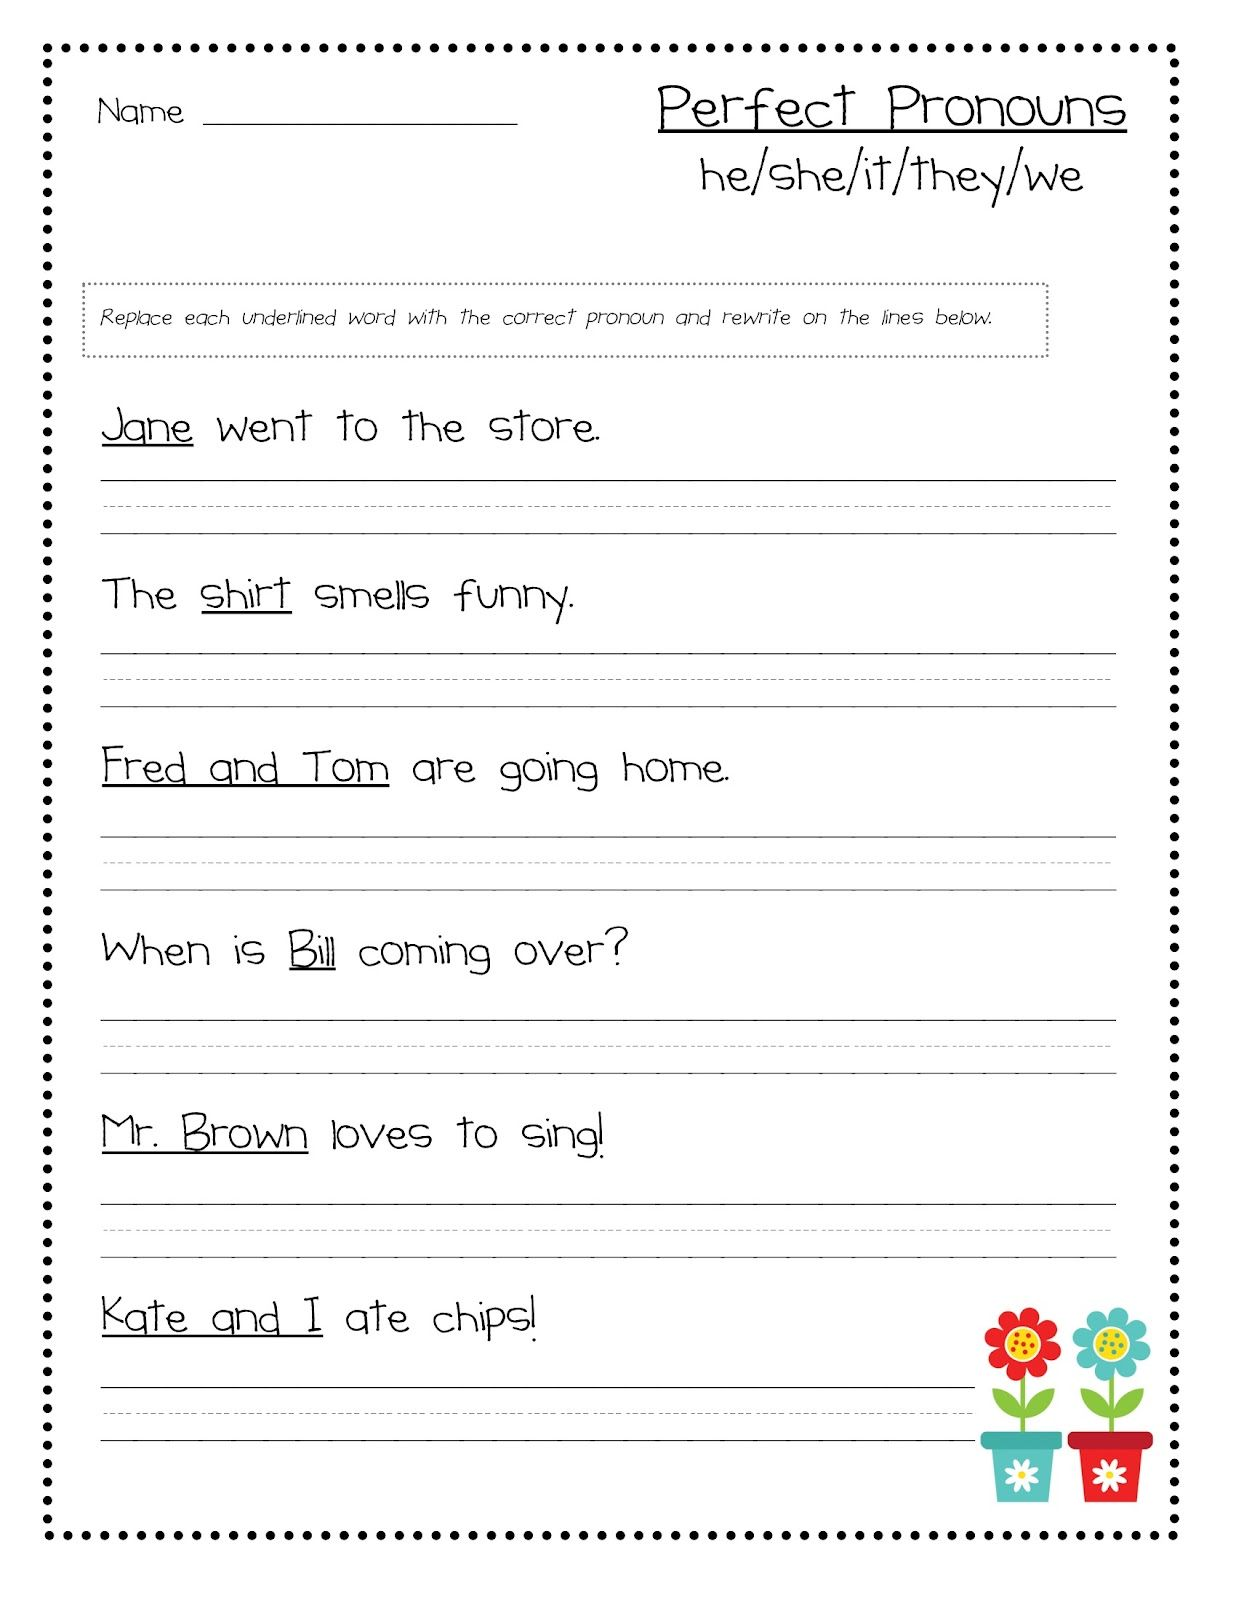 Worksheets Pronoun Worksheets 2nd Grade teacher idea factory power up with pronouns new skills pack perfect freebie from unit pronoun power